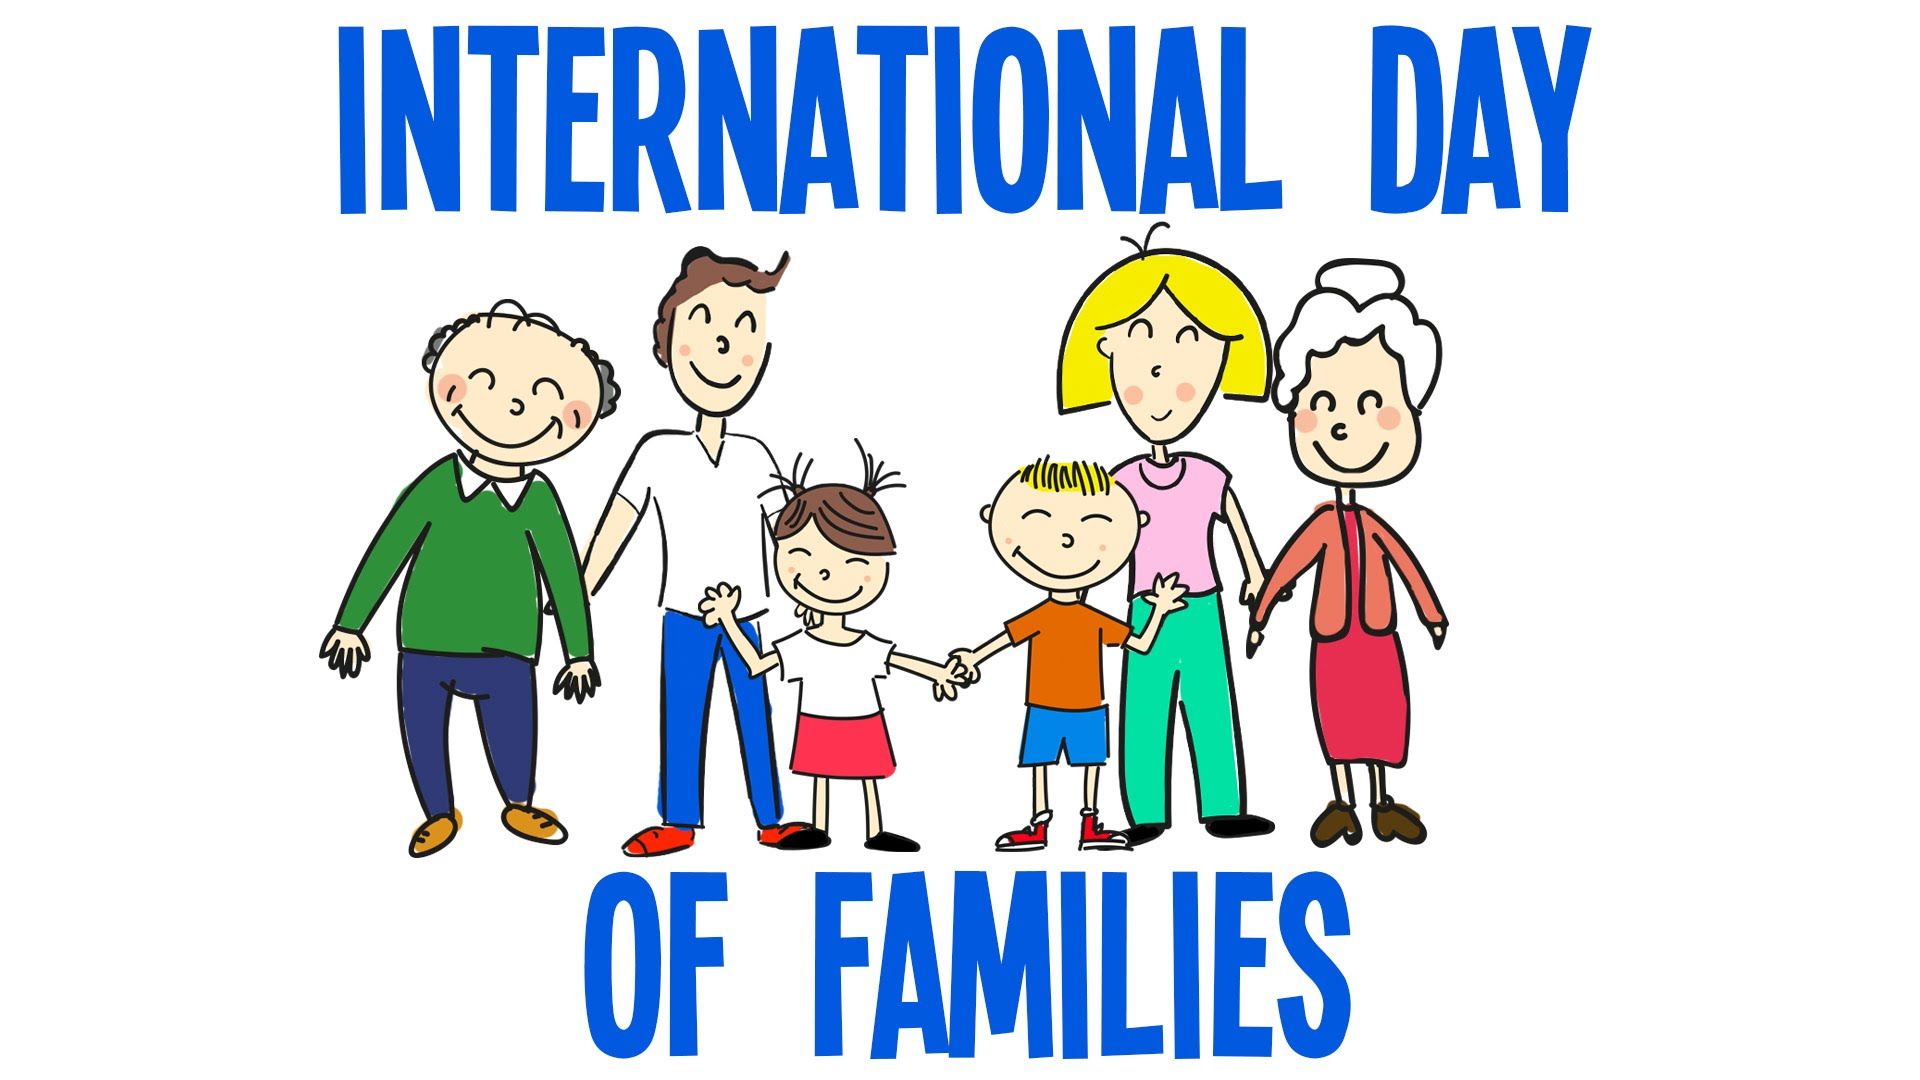 International family day pictures images graphics page 2 - Family days enero 2017 ...